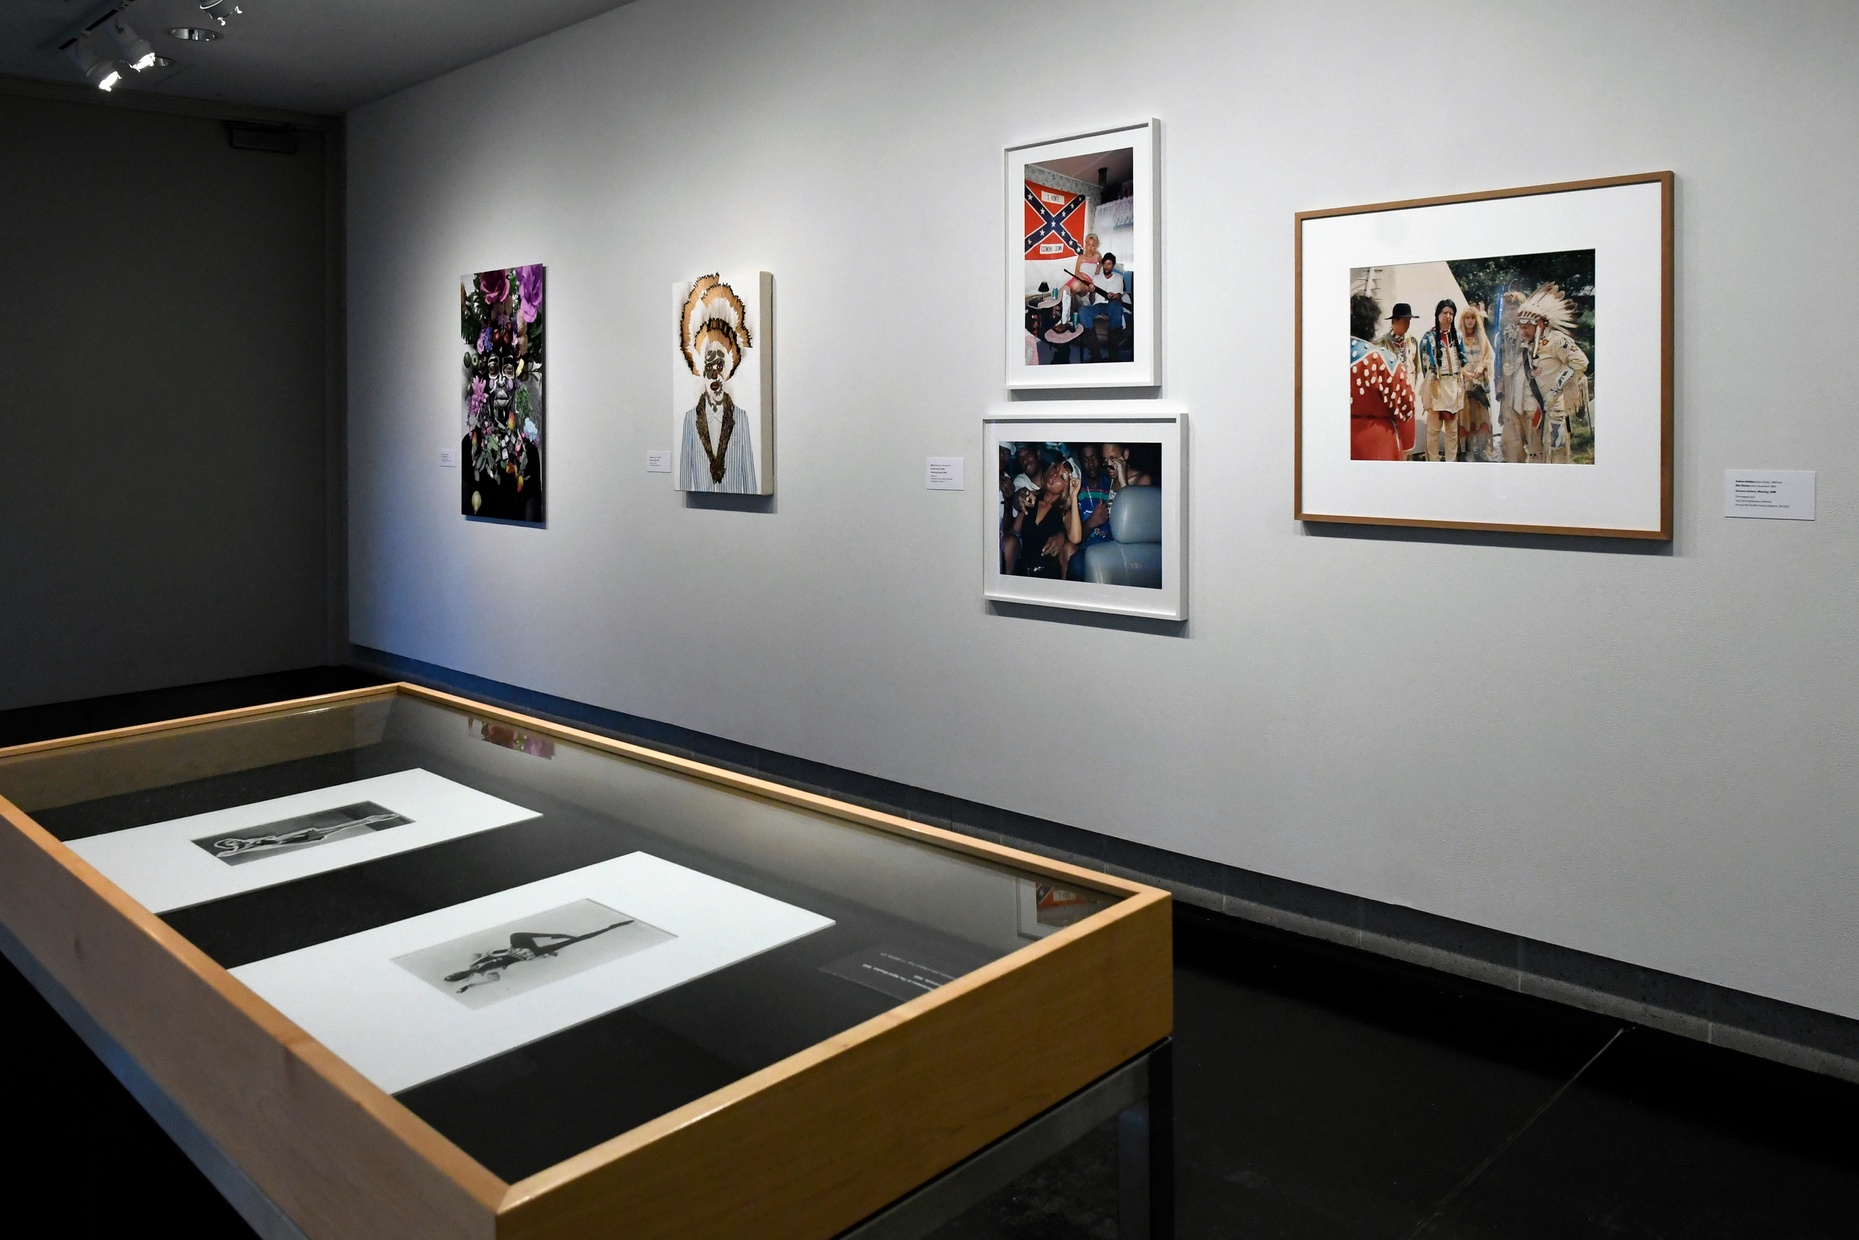 Five photographs of people hang on a gray wall with a case holding two black and white photographs visible in the foreground.